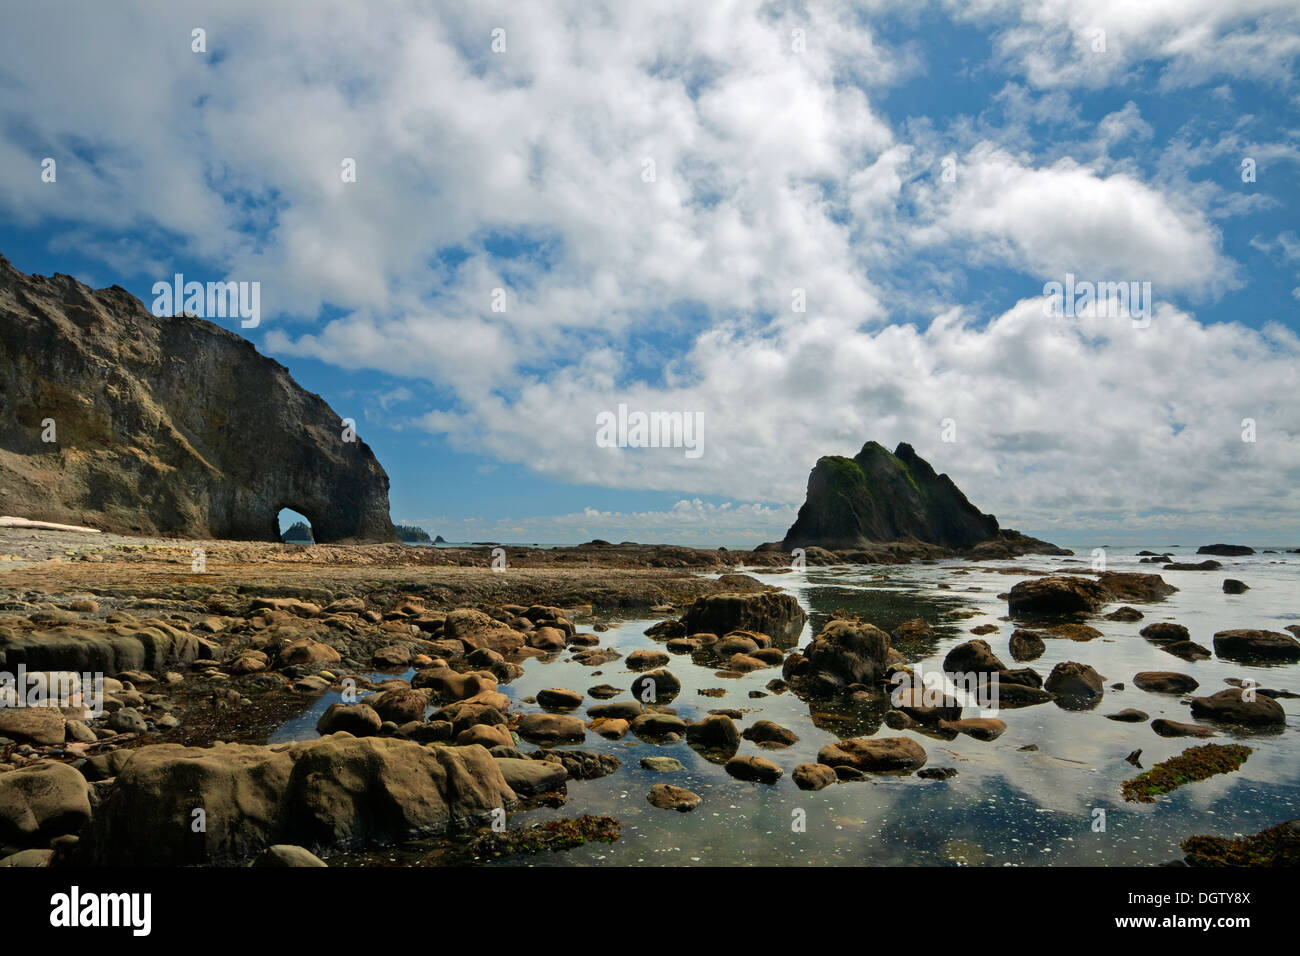 WASHINGTON- Seastacks, tidepools, windows and offshore islands at Hole-in-the-Wall on the Pacific Coast in Olympic National Park - Stock Image